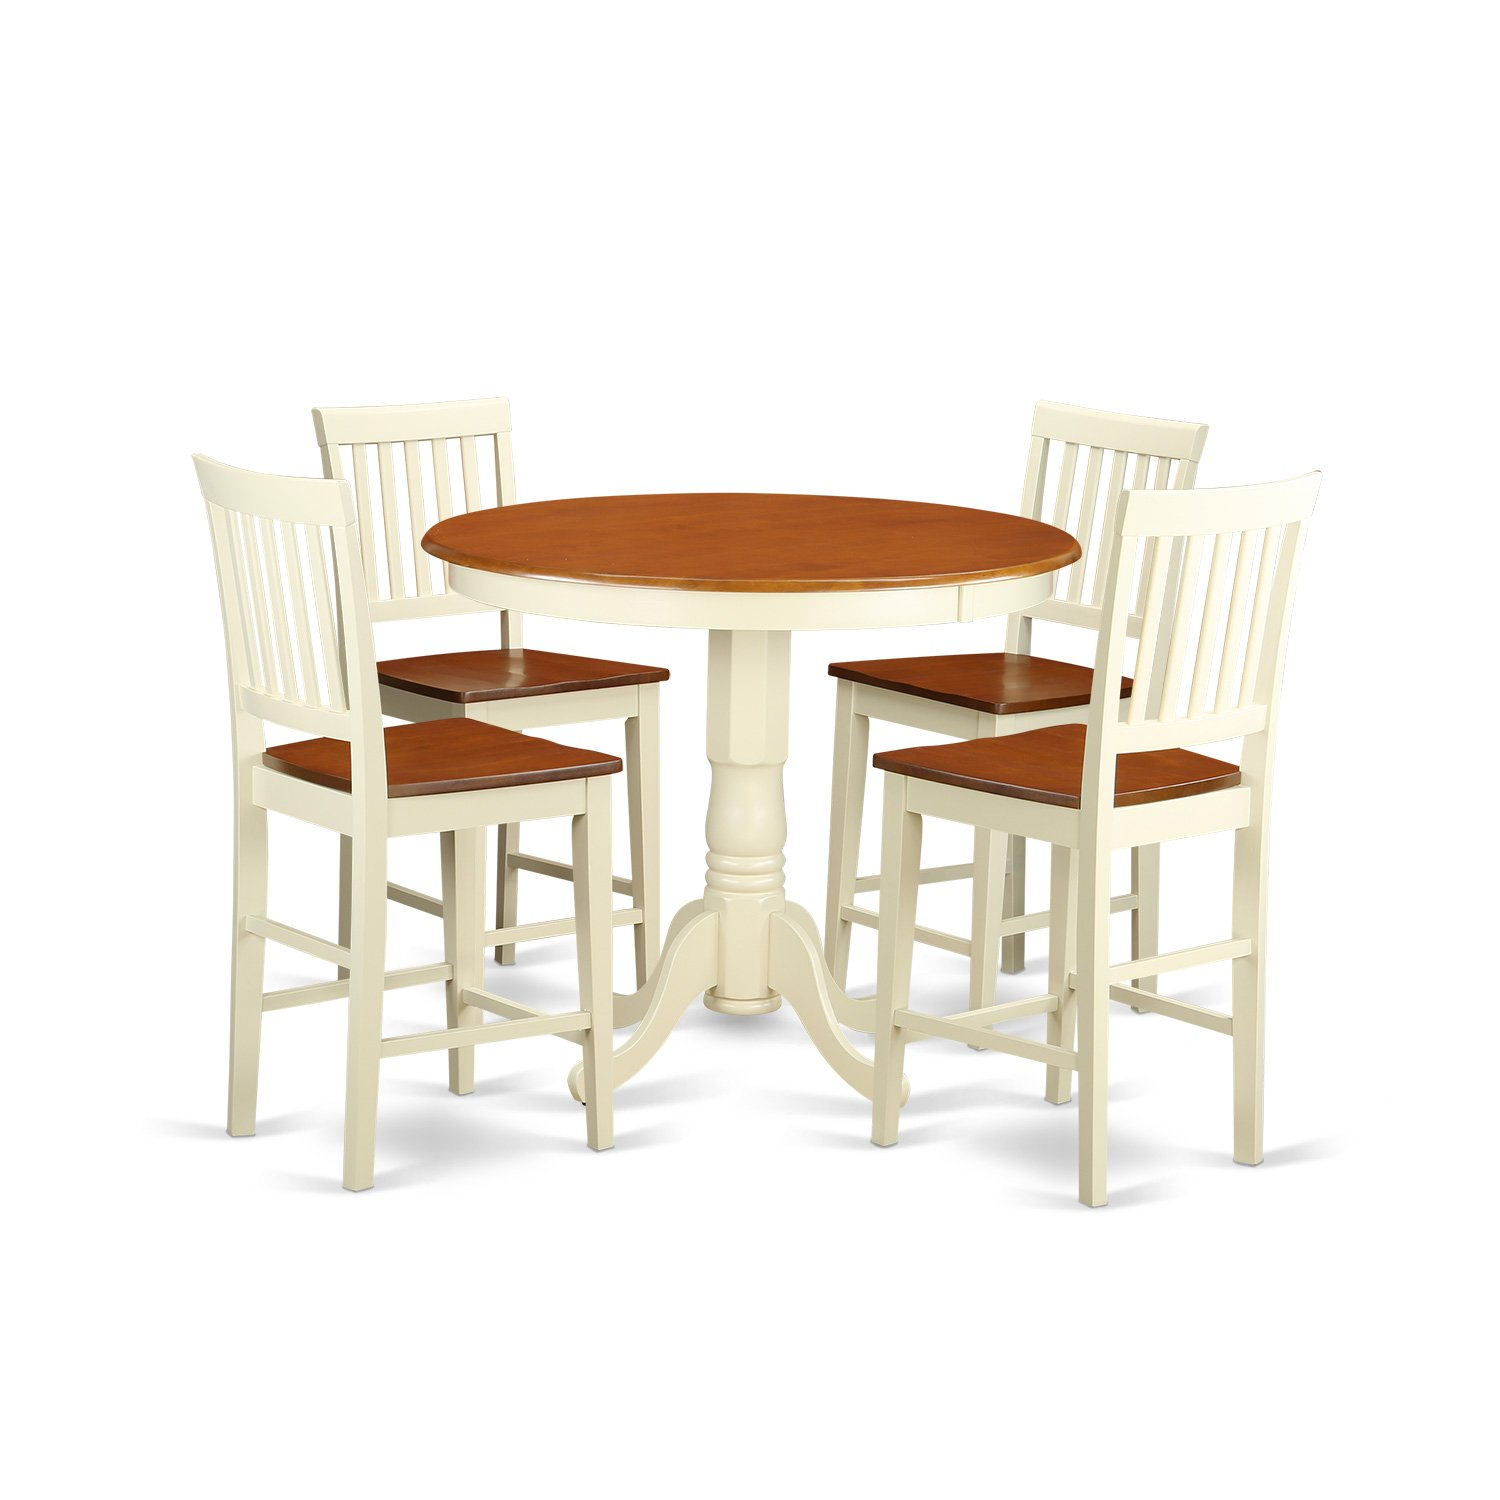 JAVN5-WHI-W 5 Pc counter height Dining set-high Table and 4 Kitchen Chairs